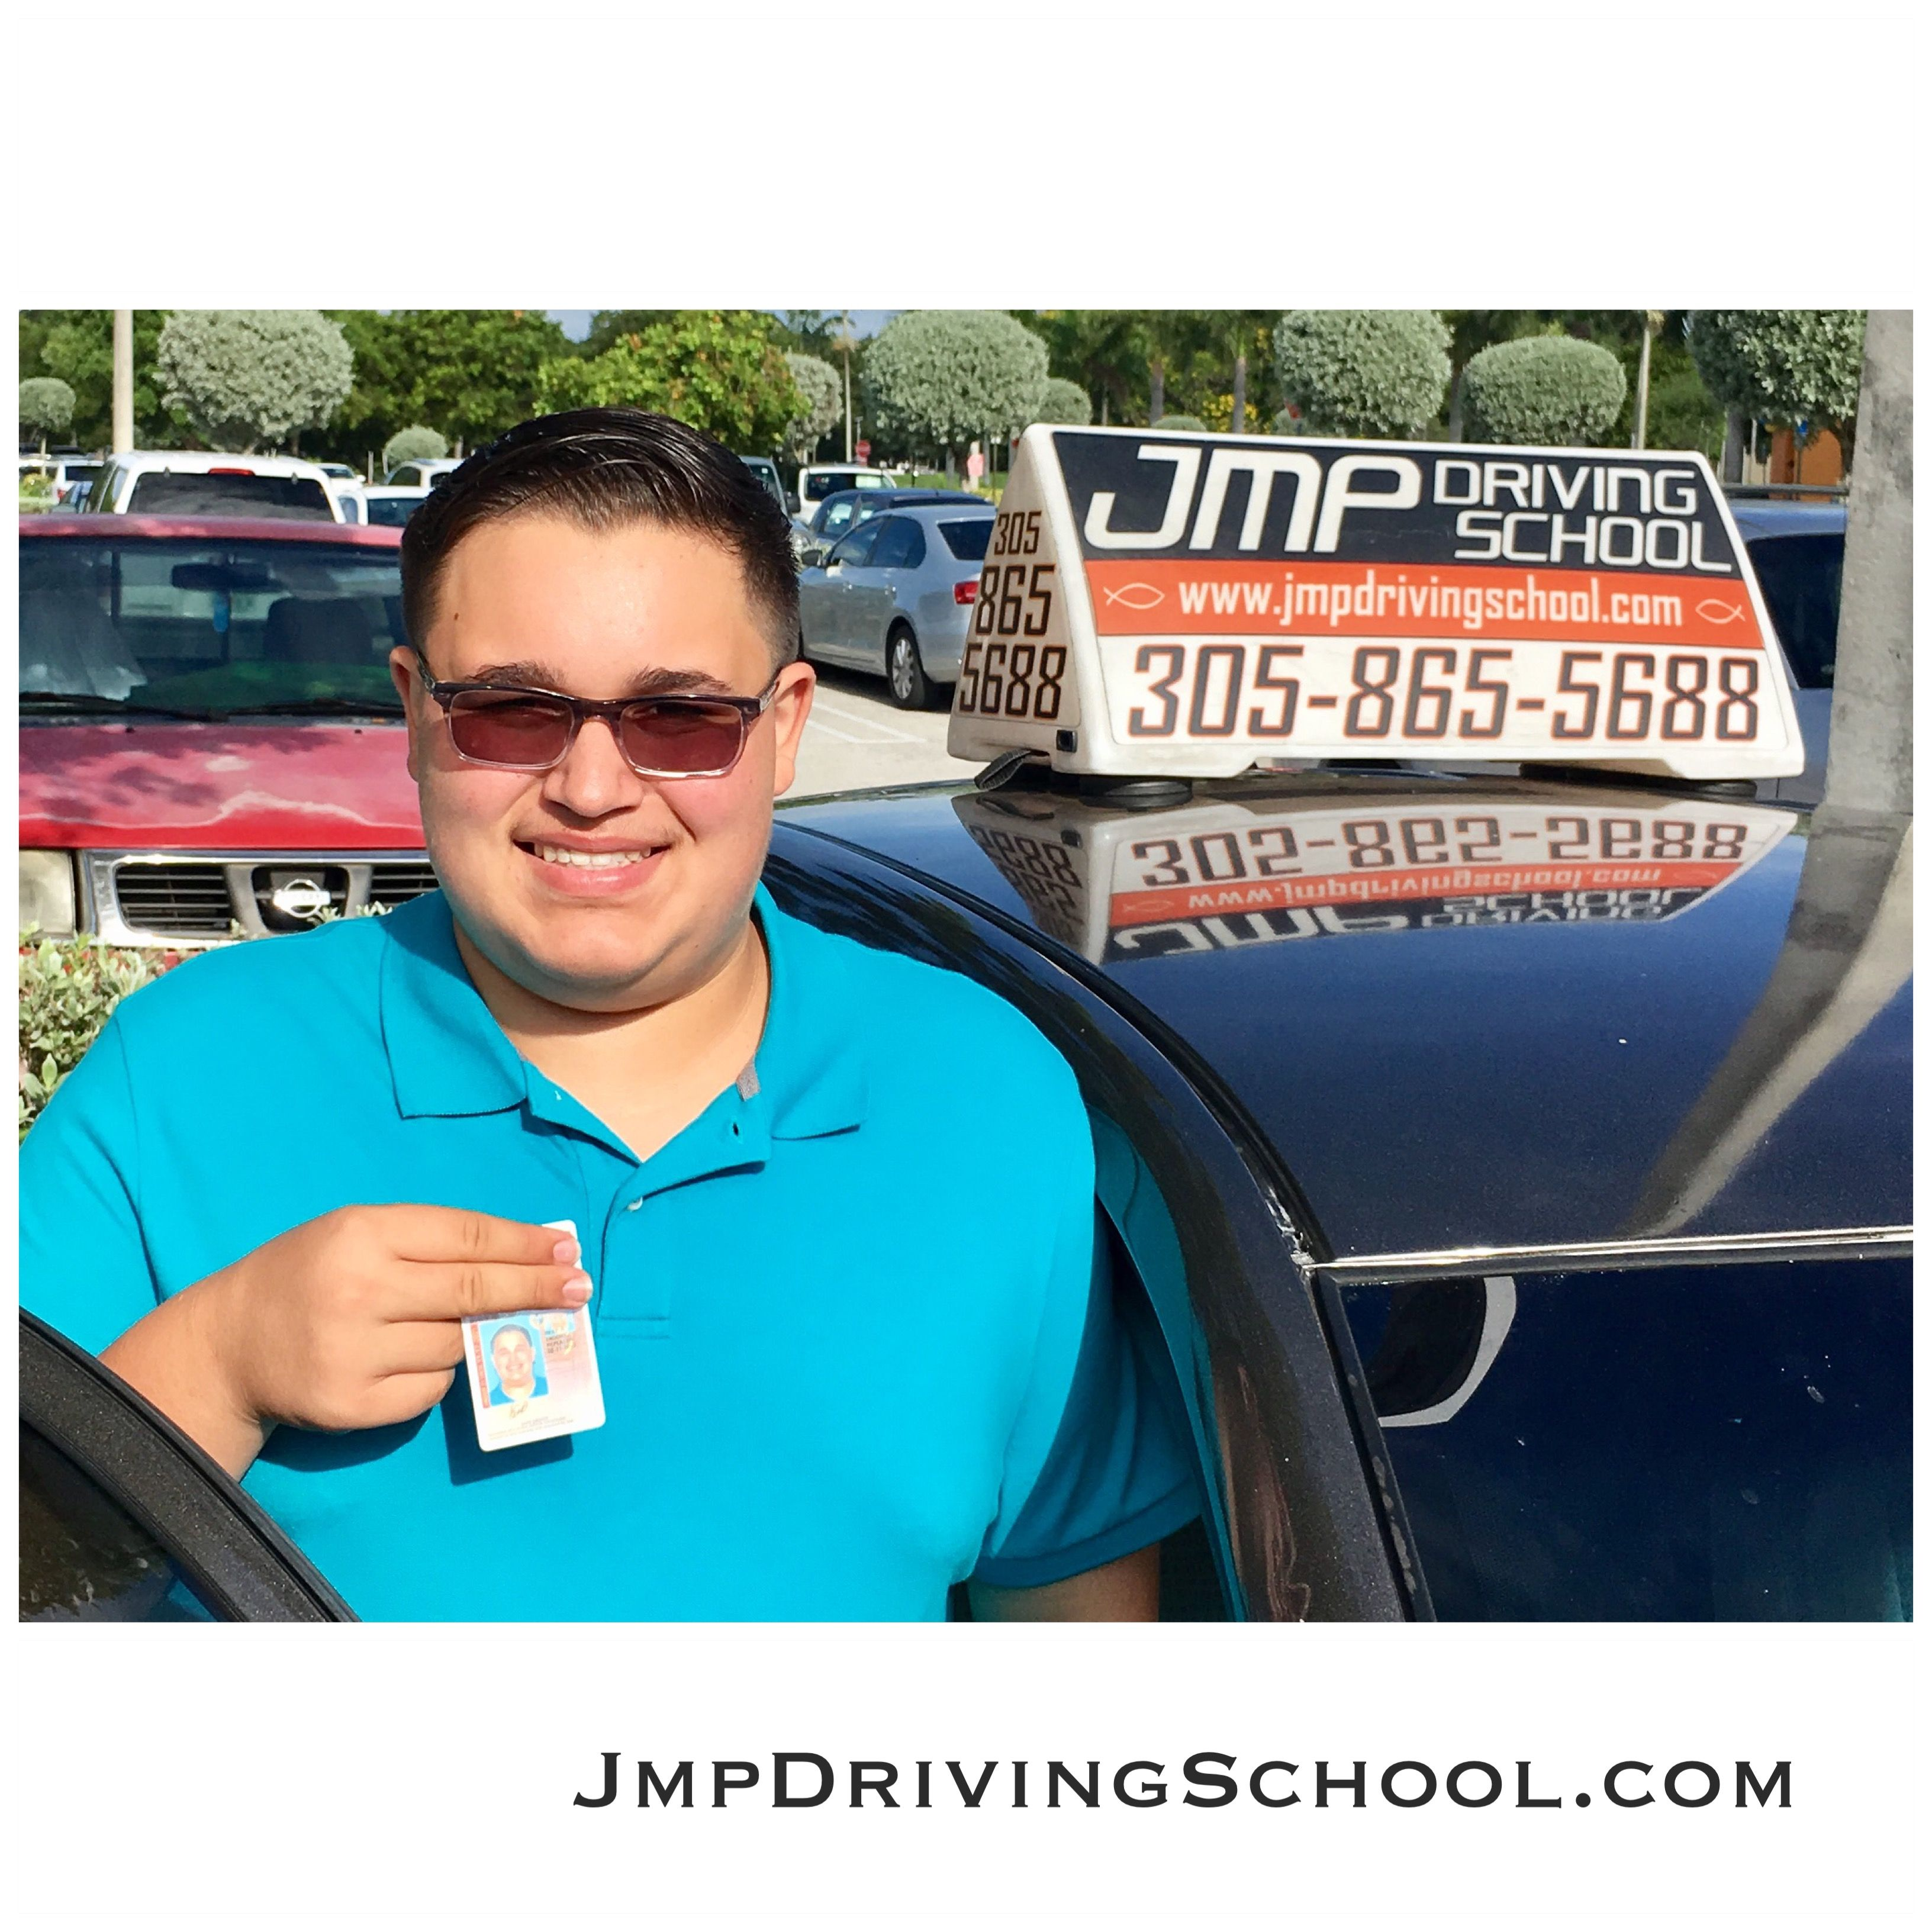 Another happy and satisfied customer who got the license